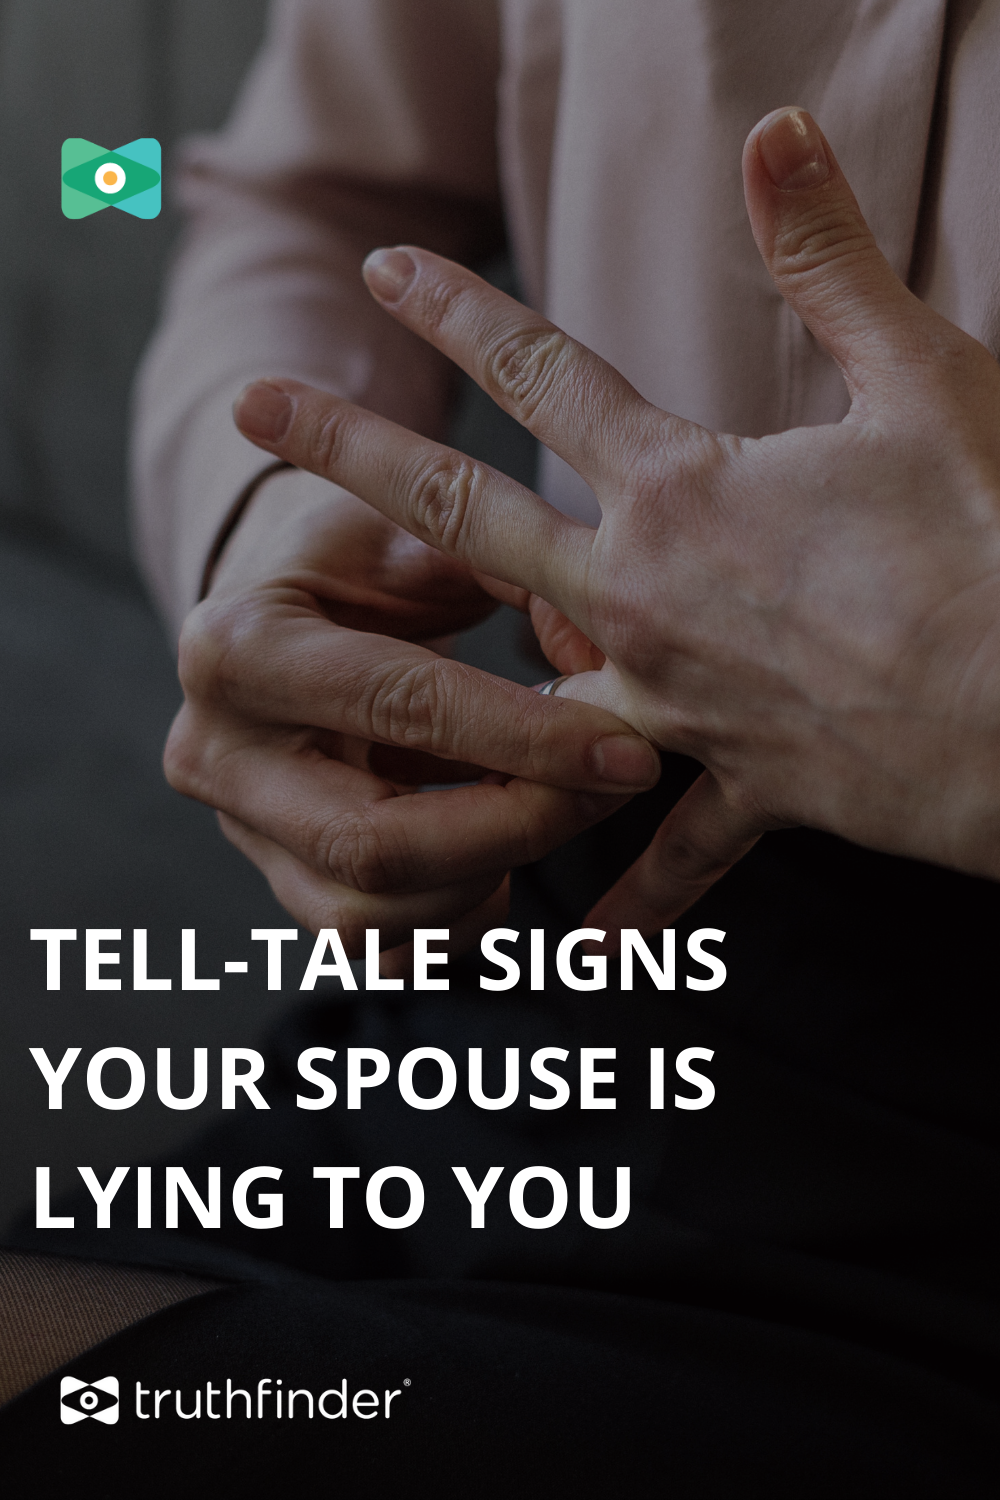 Lying Spouse? How to Tell If Someone Is Lying About Cheating